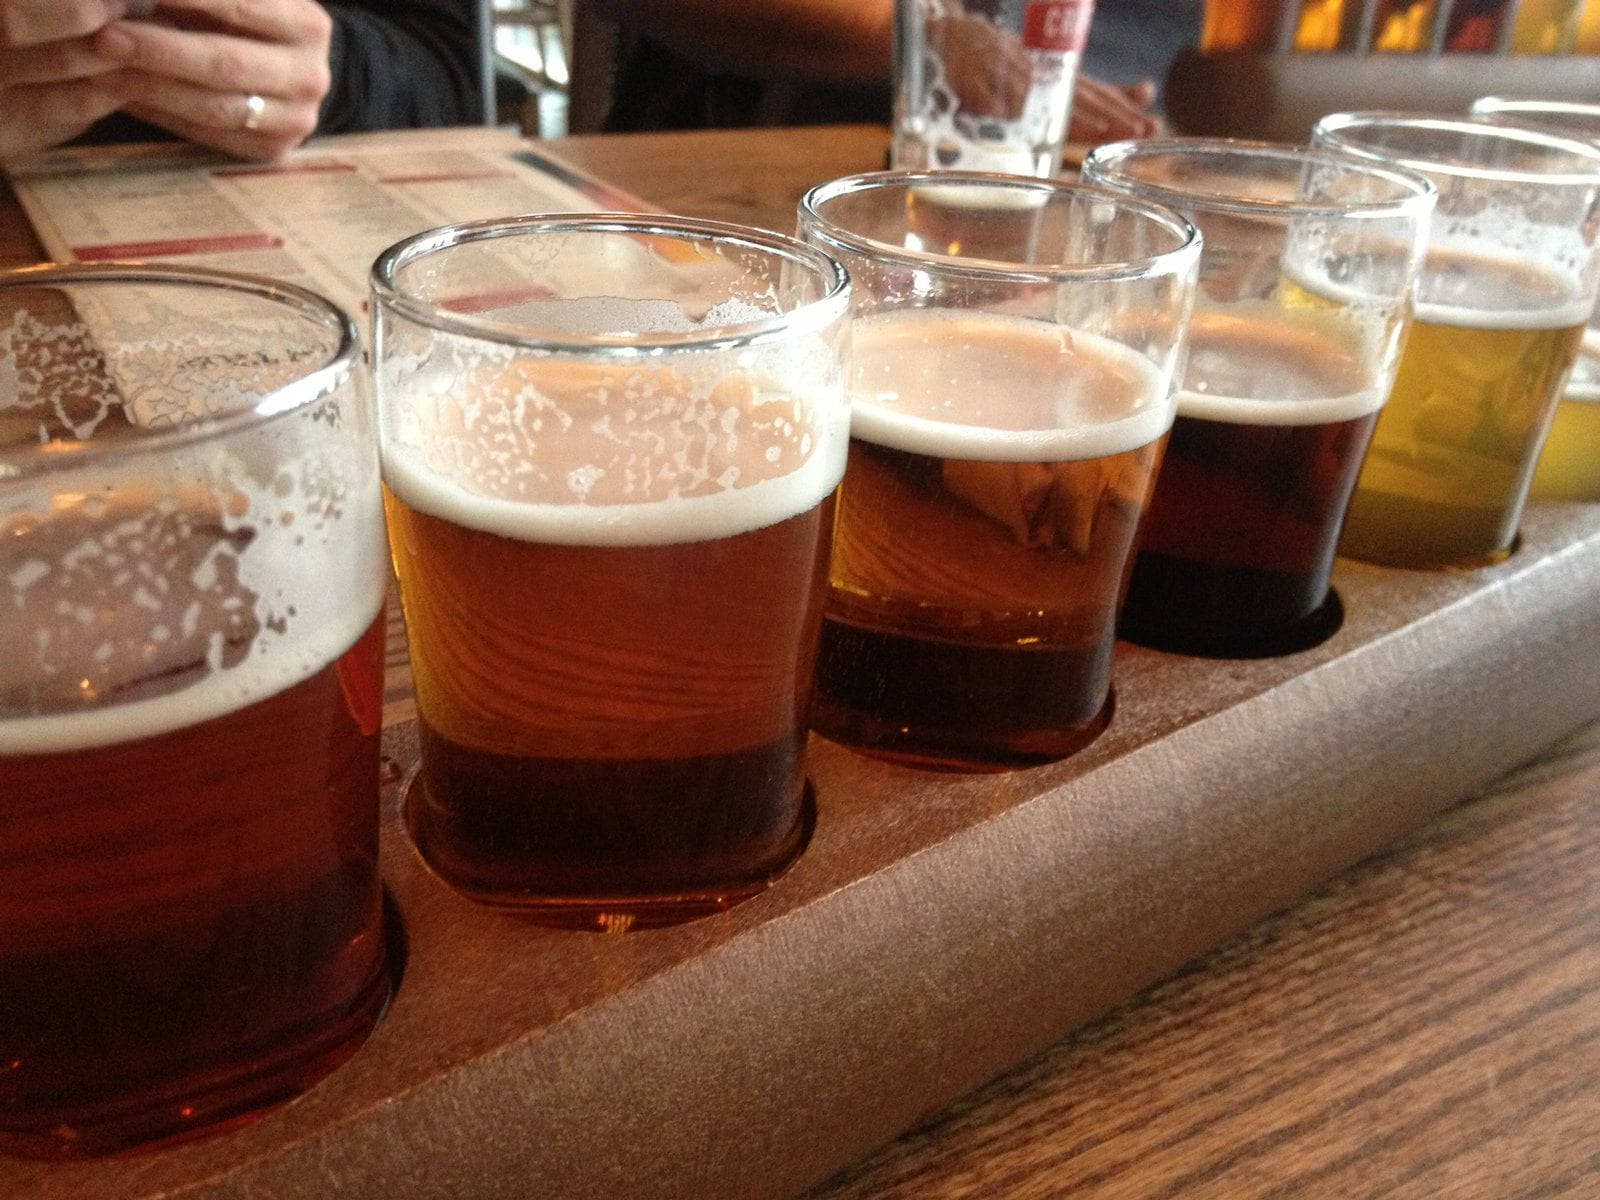 10 Breweries to Visit When in Sacramento